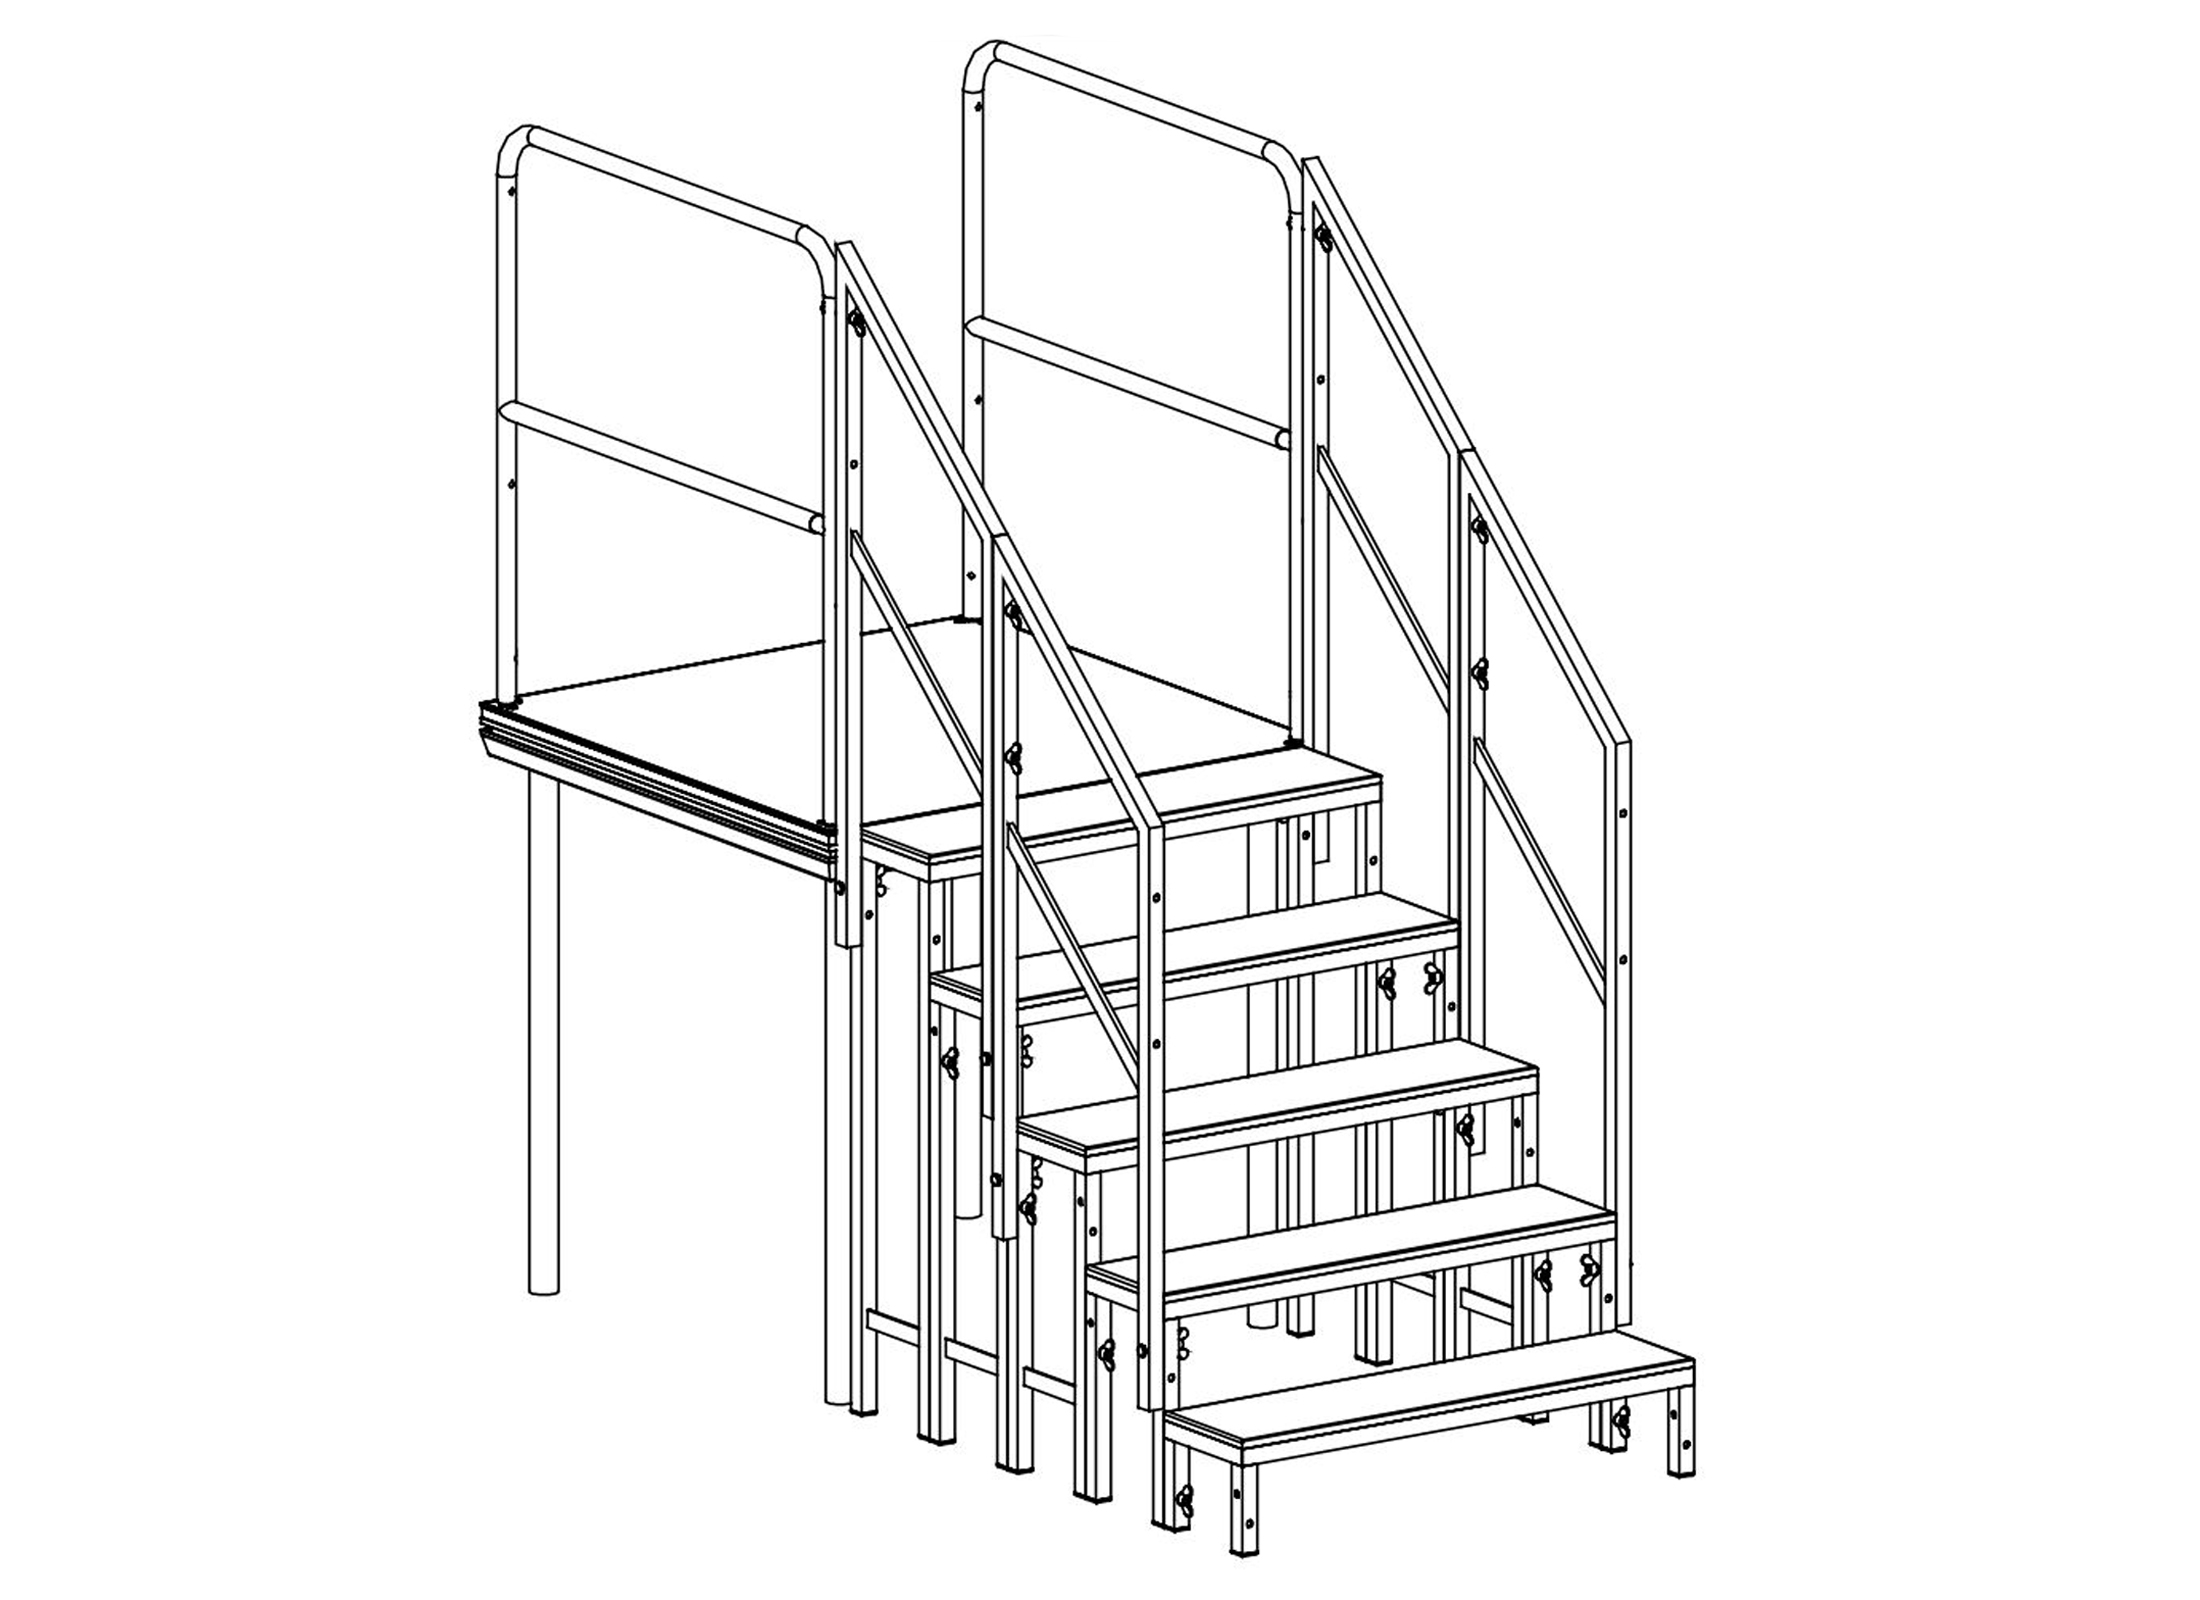 Stagedex Sm Stair Rail 01 Railing Online At Low Prices Huss Diagram 2